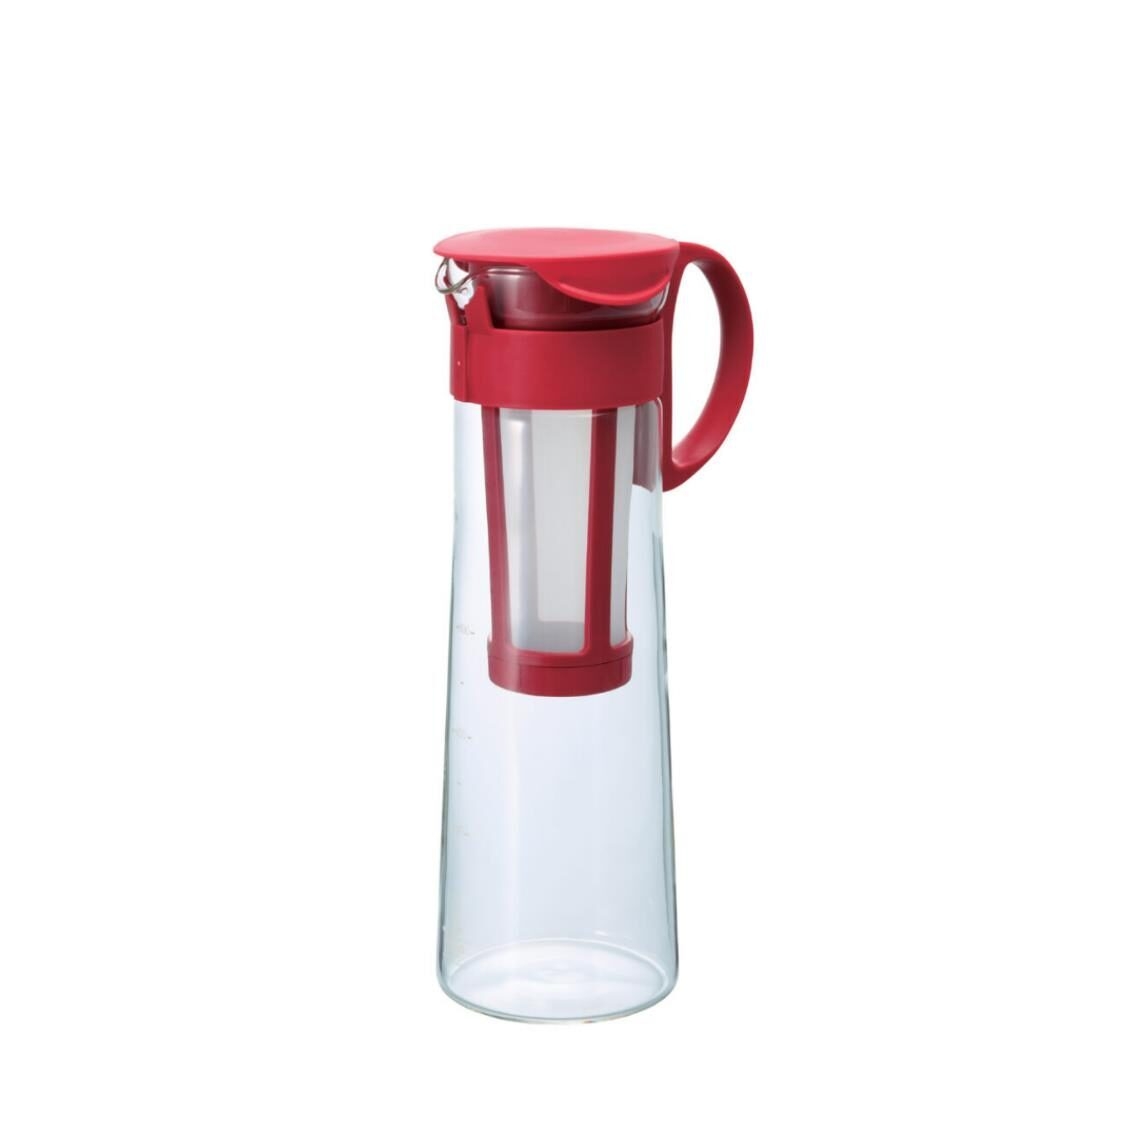 Hario Mizudashi Cold Brew Coffee Pot Water Pitcher With Built-in Strainer Red 1000ml